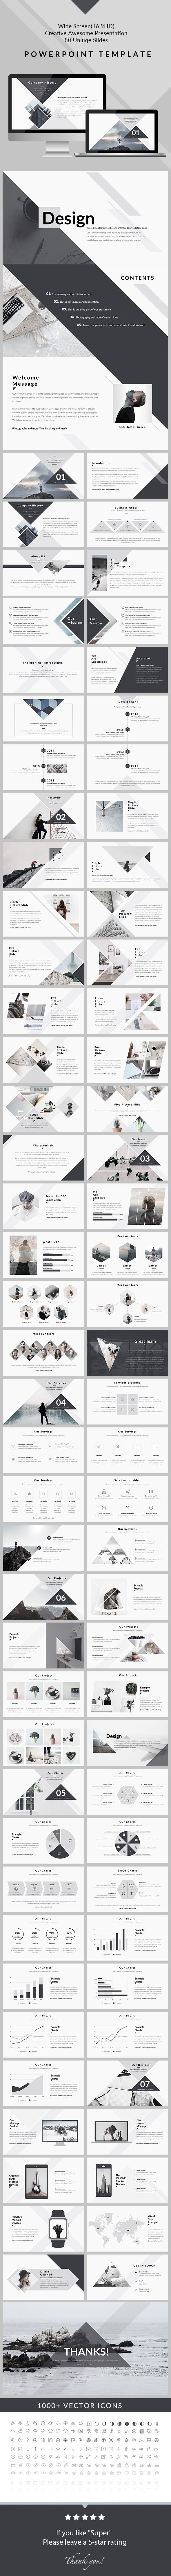 Design - Clean & Creative PowerPoint Presentation Template